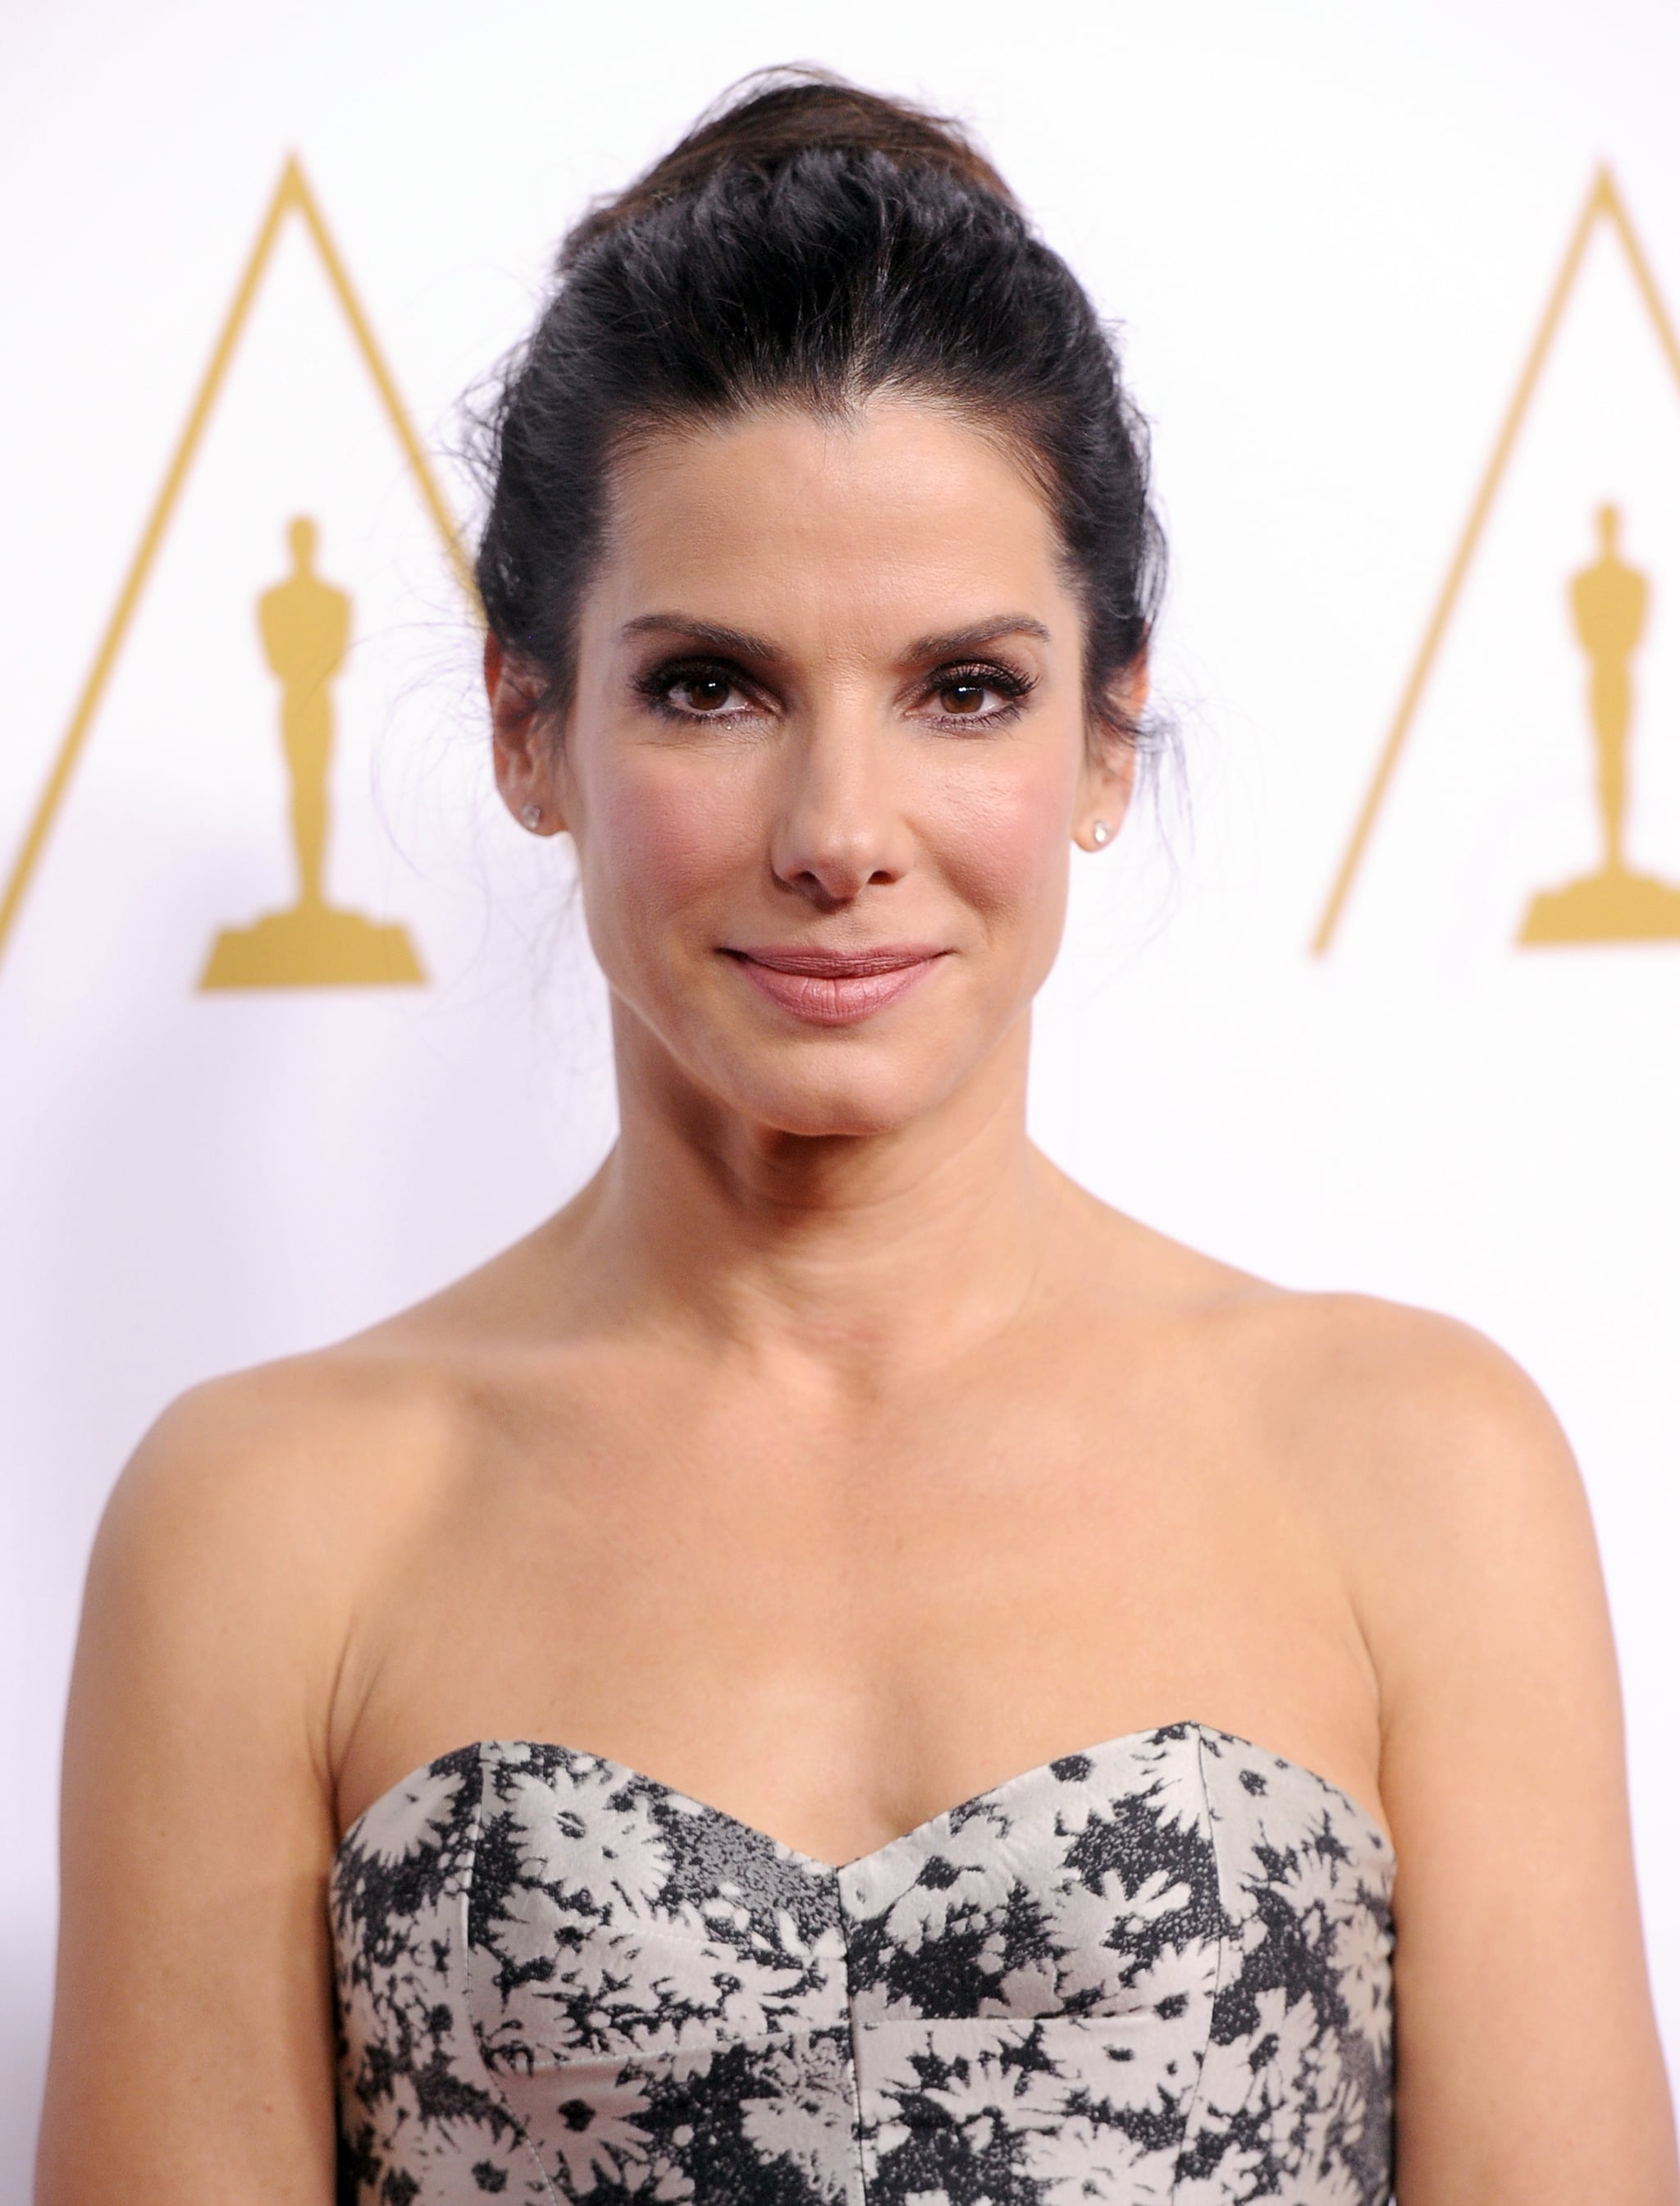 Sandra Bullock showed up at the star-studded event.